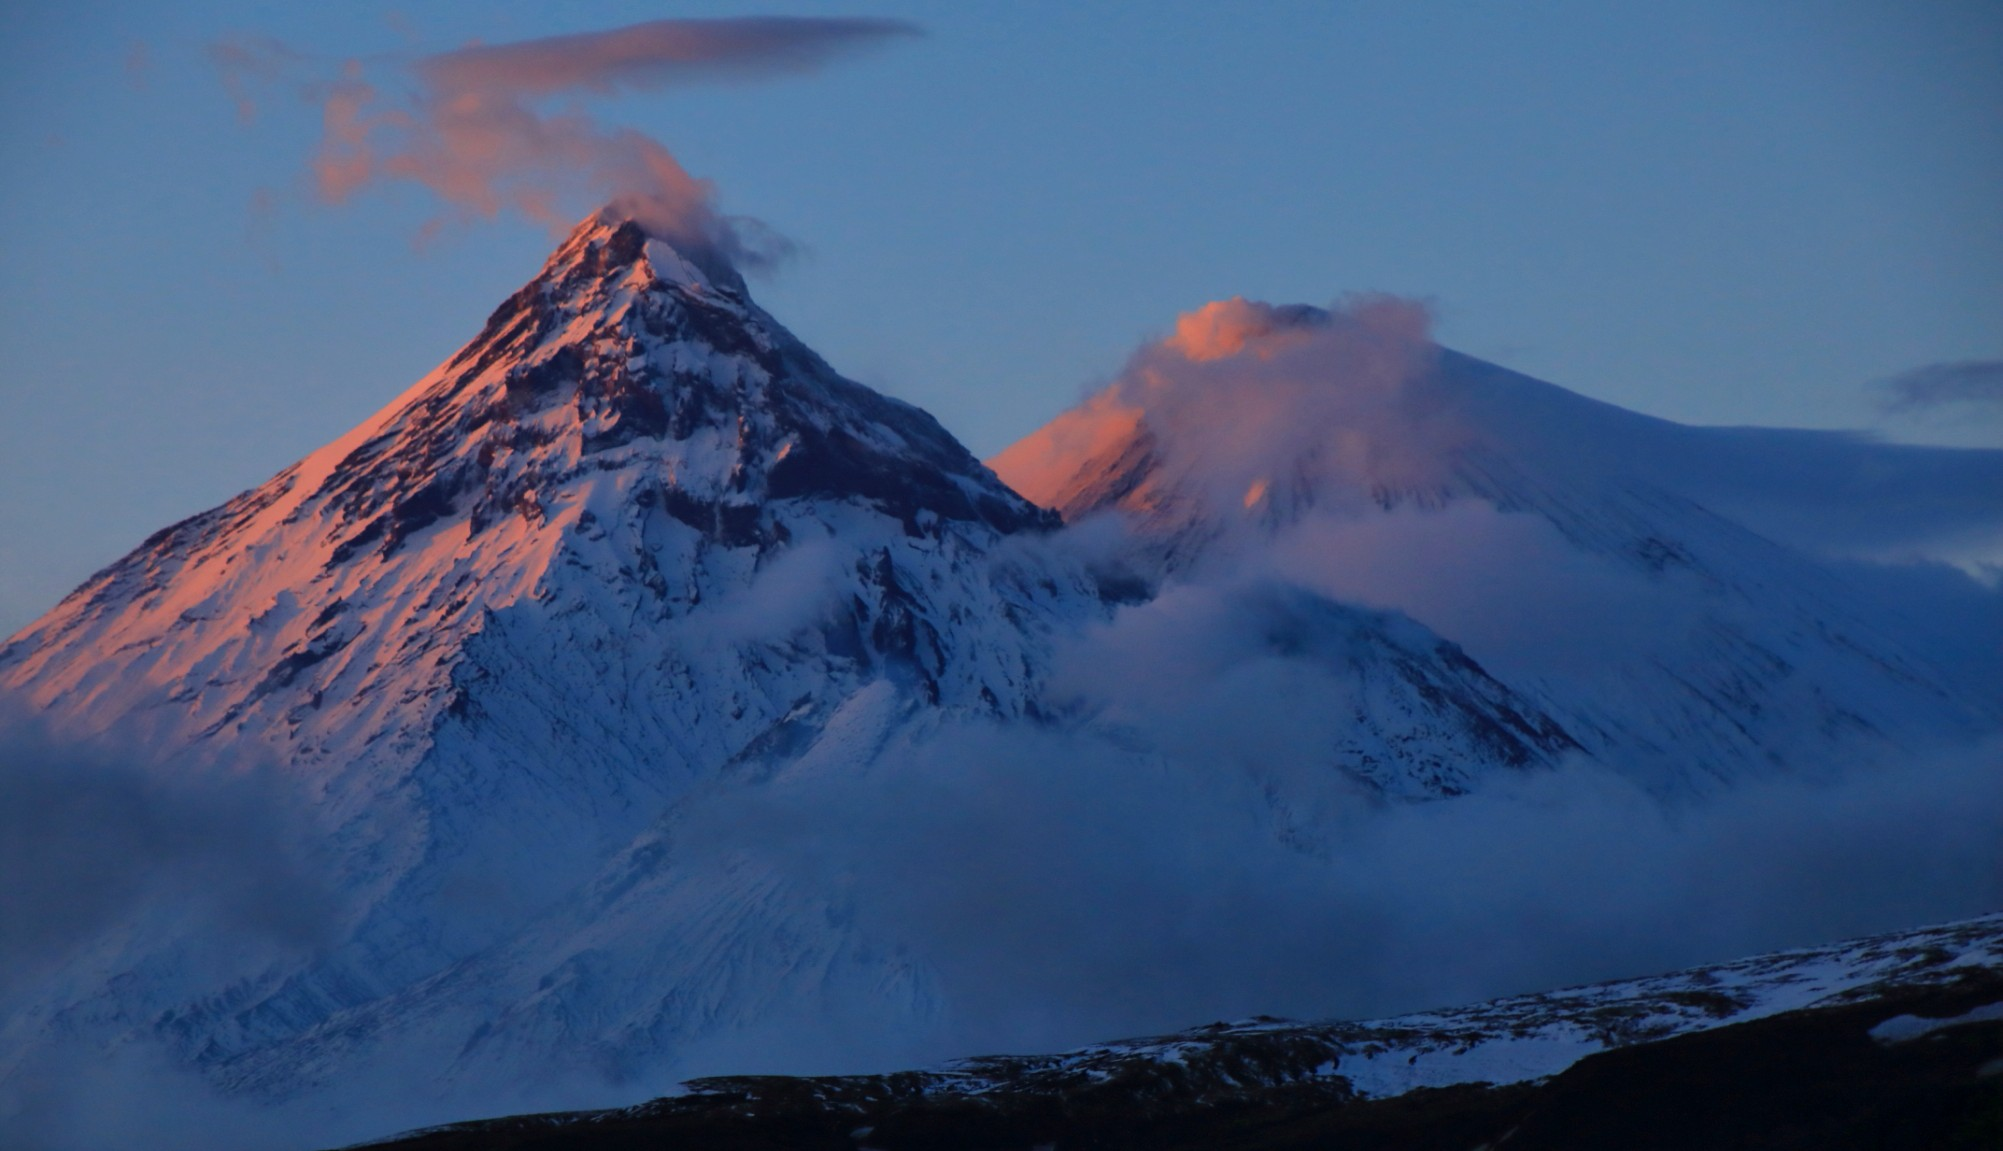 Volcanos in Kamchatka as shot on Secret Compass expedition by Cheryl Hindle